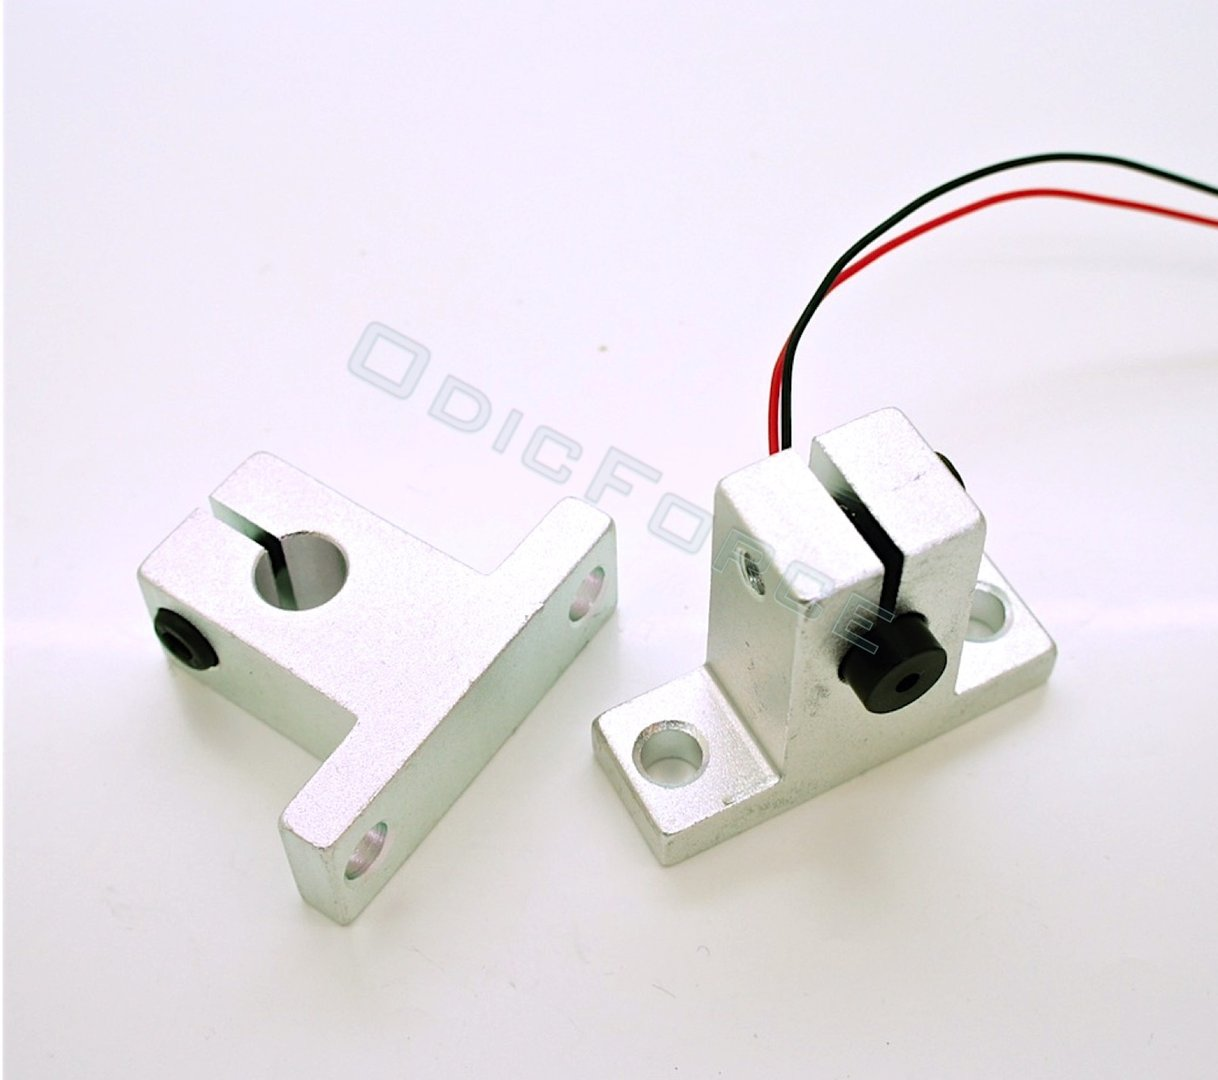 Alloy Module Holder for 8mm Modules